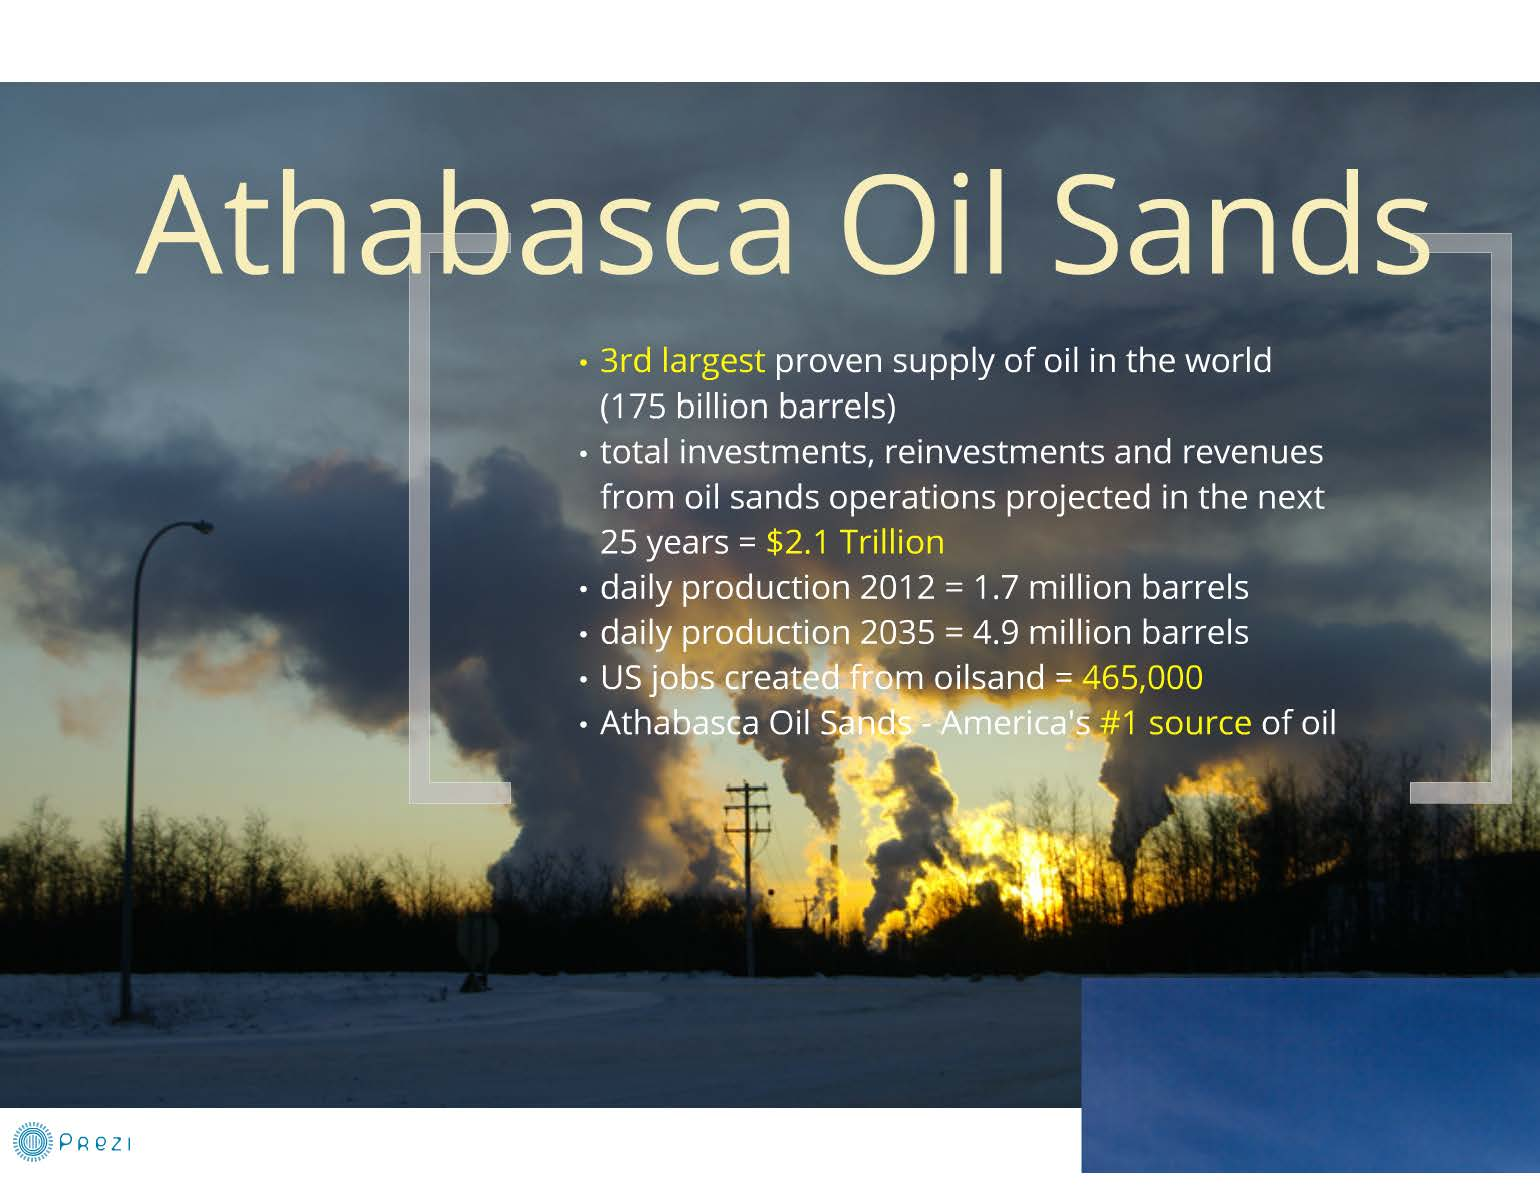 athabasca oil sands essay Oil sands can be used as an energy resource and the large quantities of deposits in canada eliminates the need to import oil from foreign countries this will create more jobs in canada for the processing of oil.